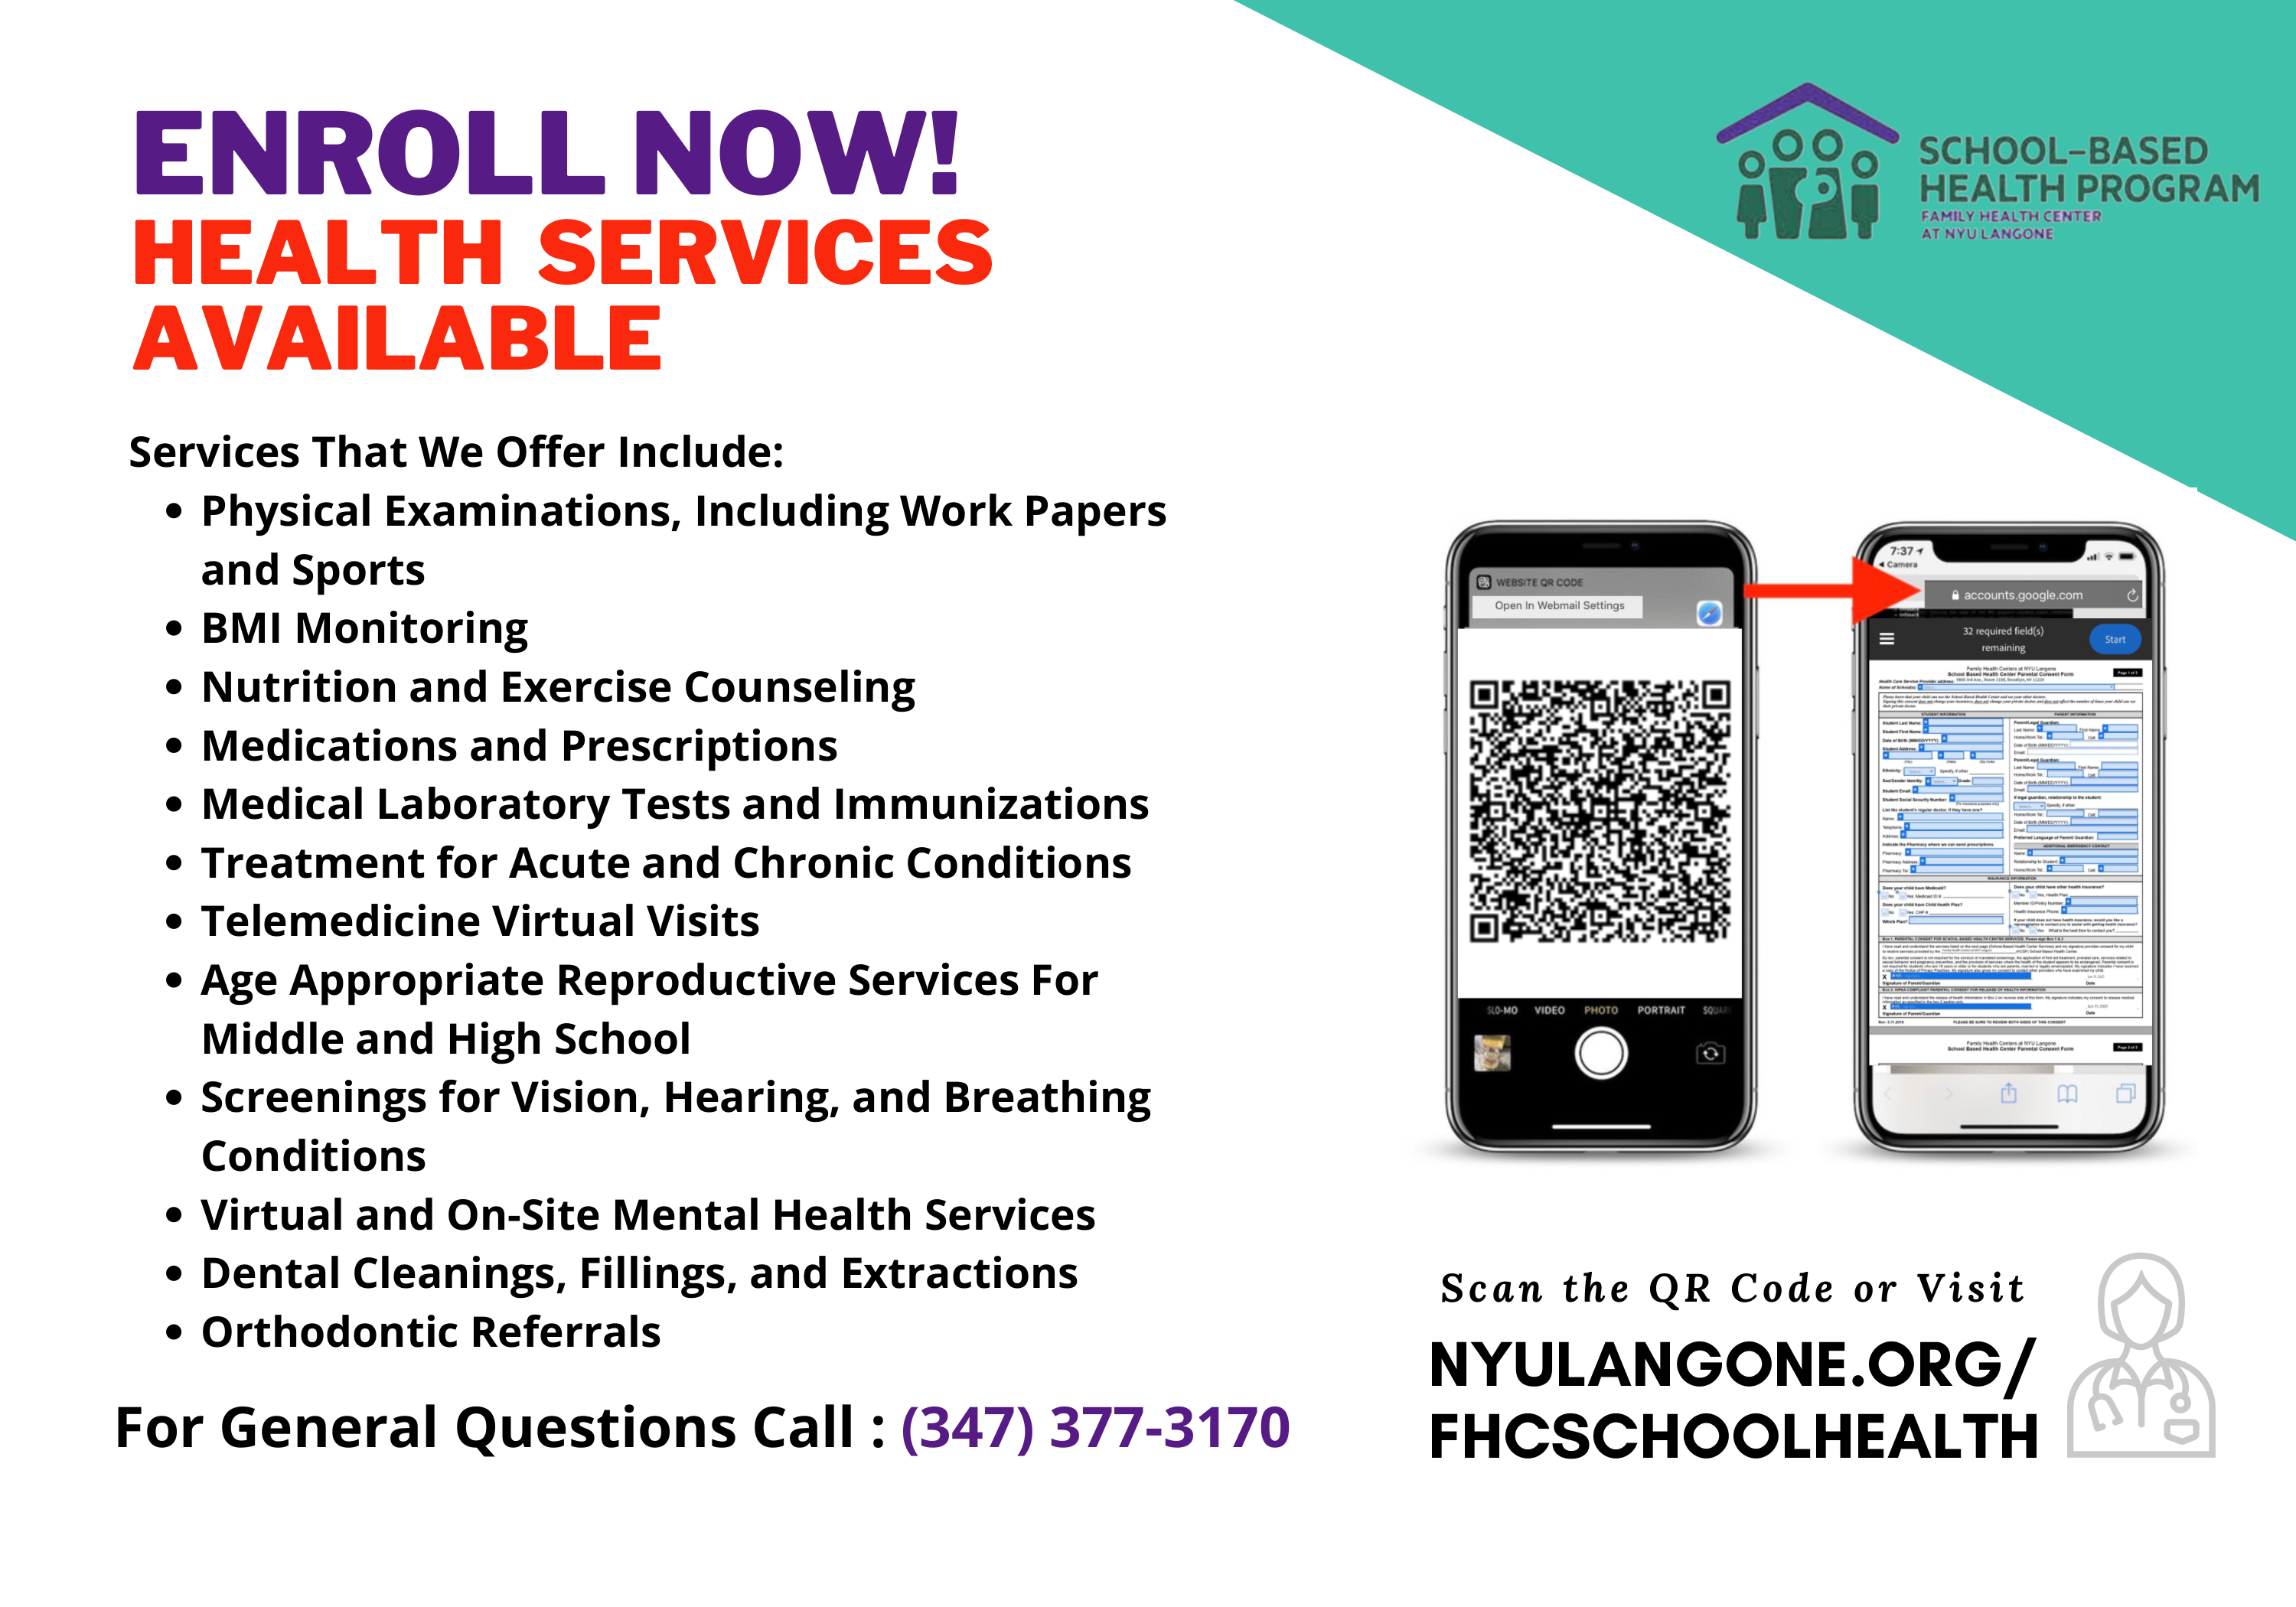 All Services School Based Health NYU FLYER for Social Page 4 14X20 Poster Size